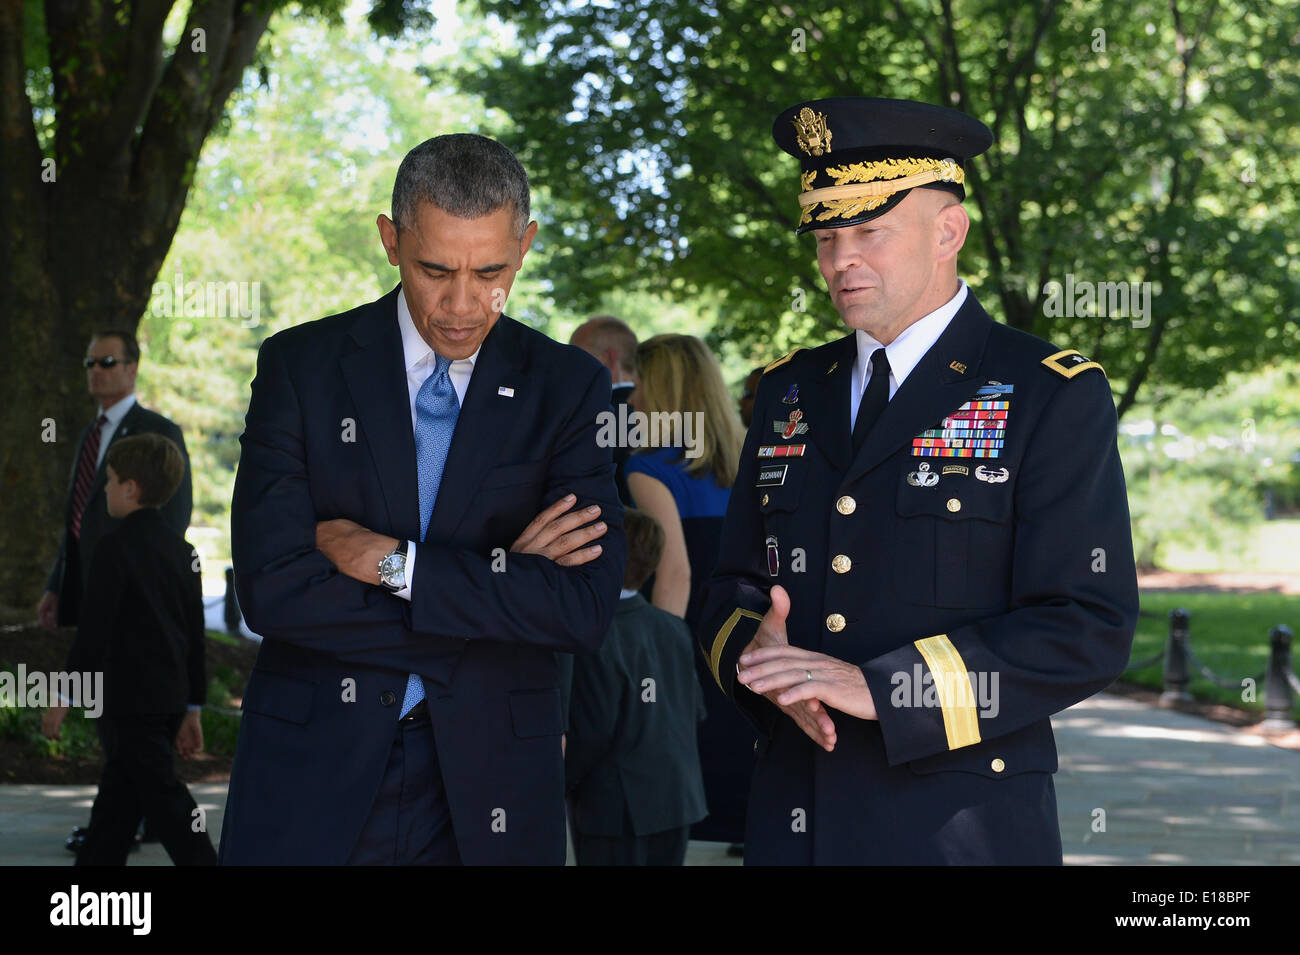 US President Barack Obama listens to Army Maj. Gen. Jeffrey S. Buchanan, right, Military District of Washington commander, before a wreath laying ceremony in recognition of Memorial Day at Arlington National Cemetery May 26, 2014 in Arlington, VA. - Stock Image